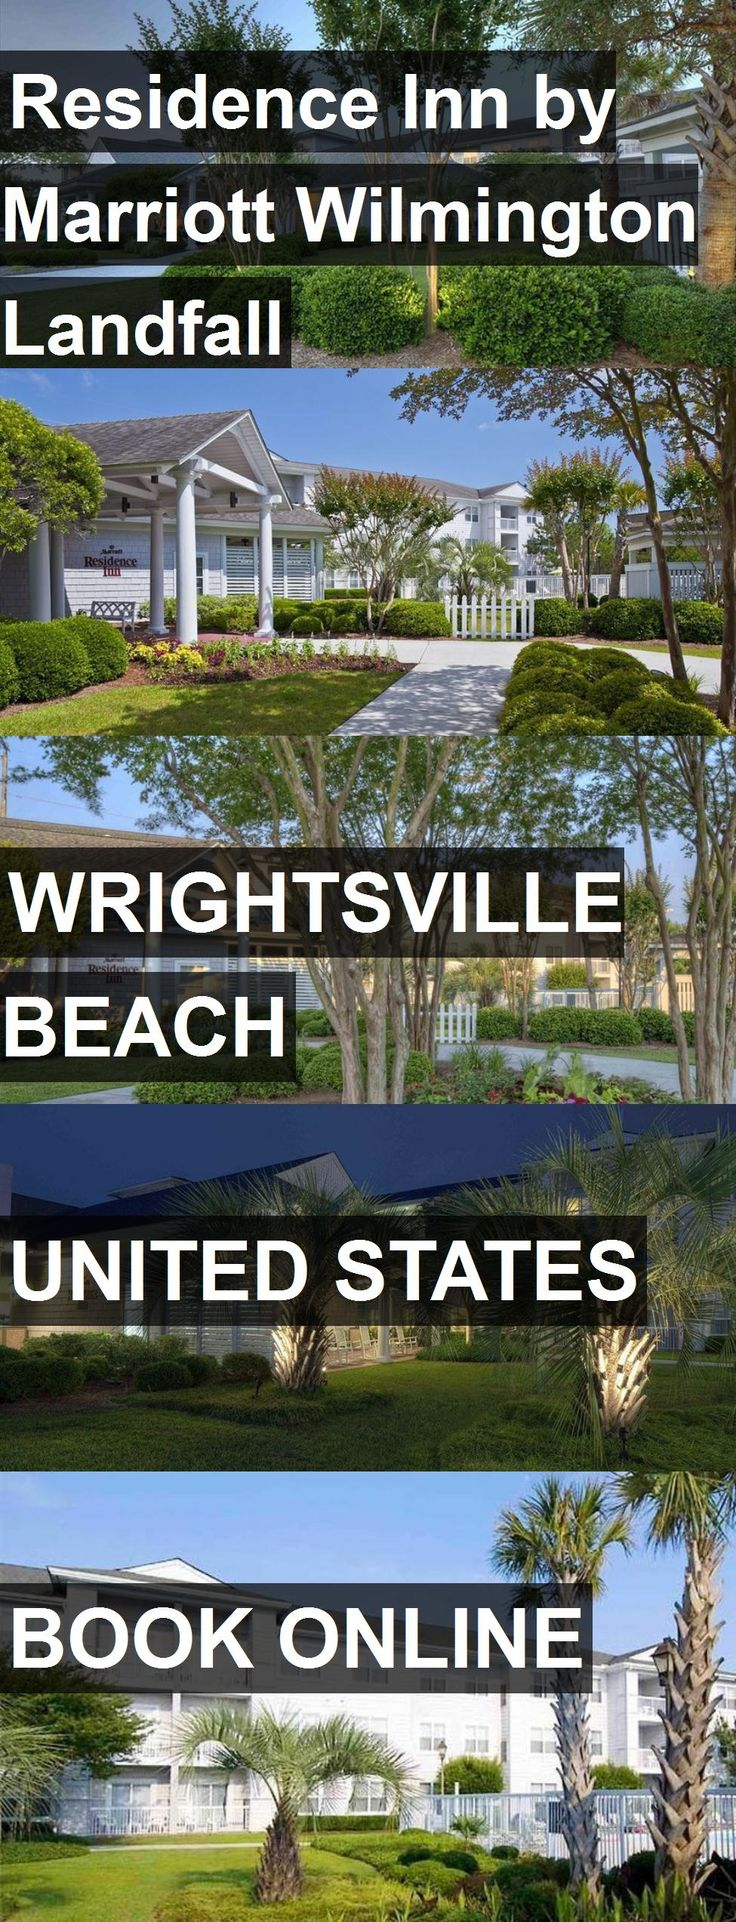 Hotel Residence Inn by Marriott Wilmington Landfall in Wrightsville Beach, United States. For more information, photos, reviews and best prices please follow the link. #UnitedStates #WrightsvilleBeach #travel #vacation #hotel